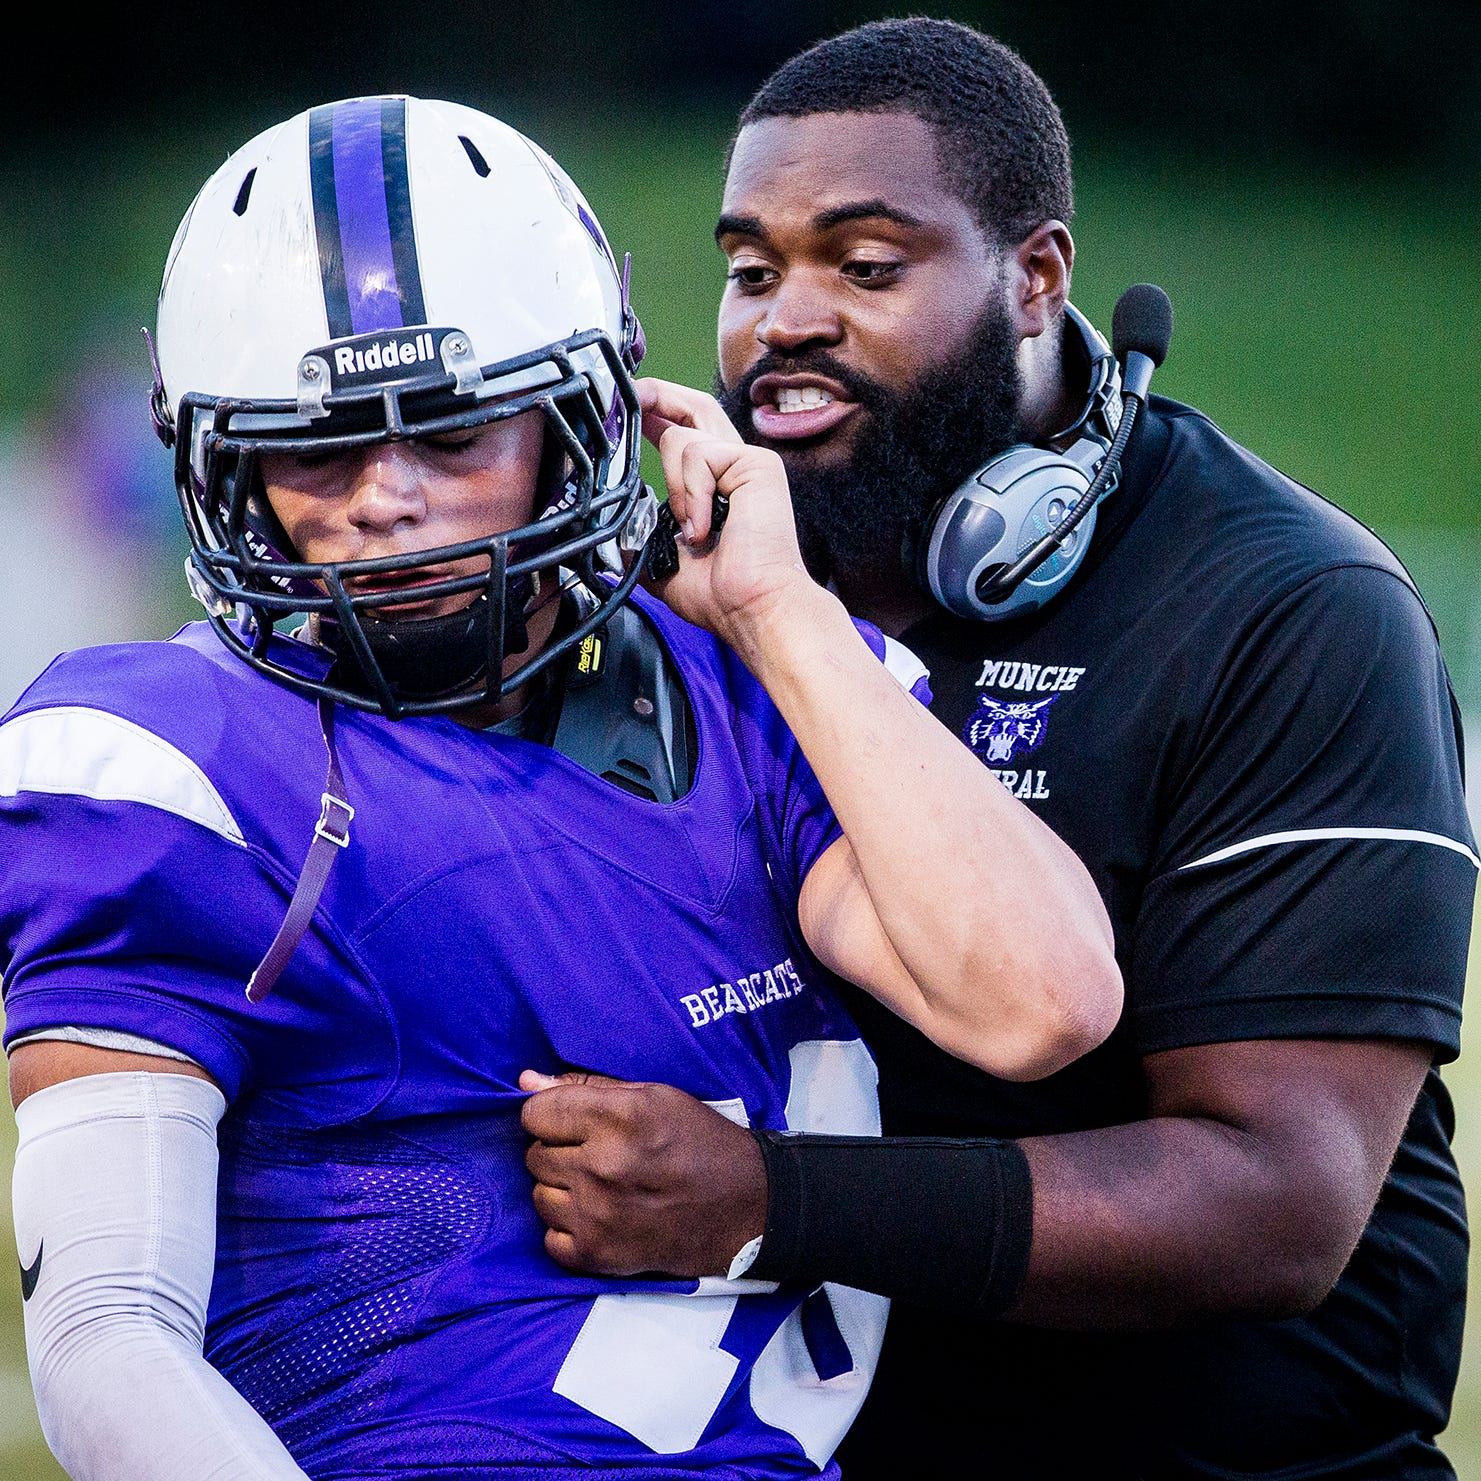 Muncie Central taps Darrick Lee as new varsity football head coach